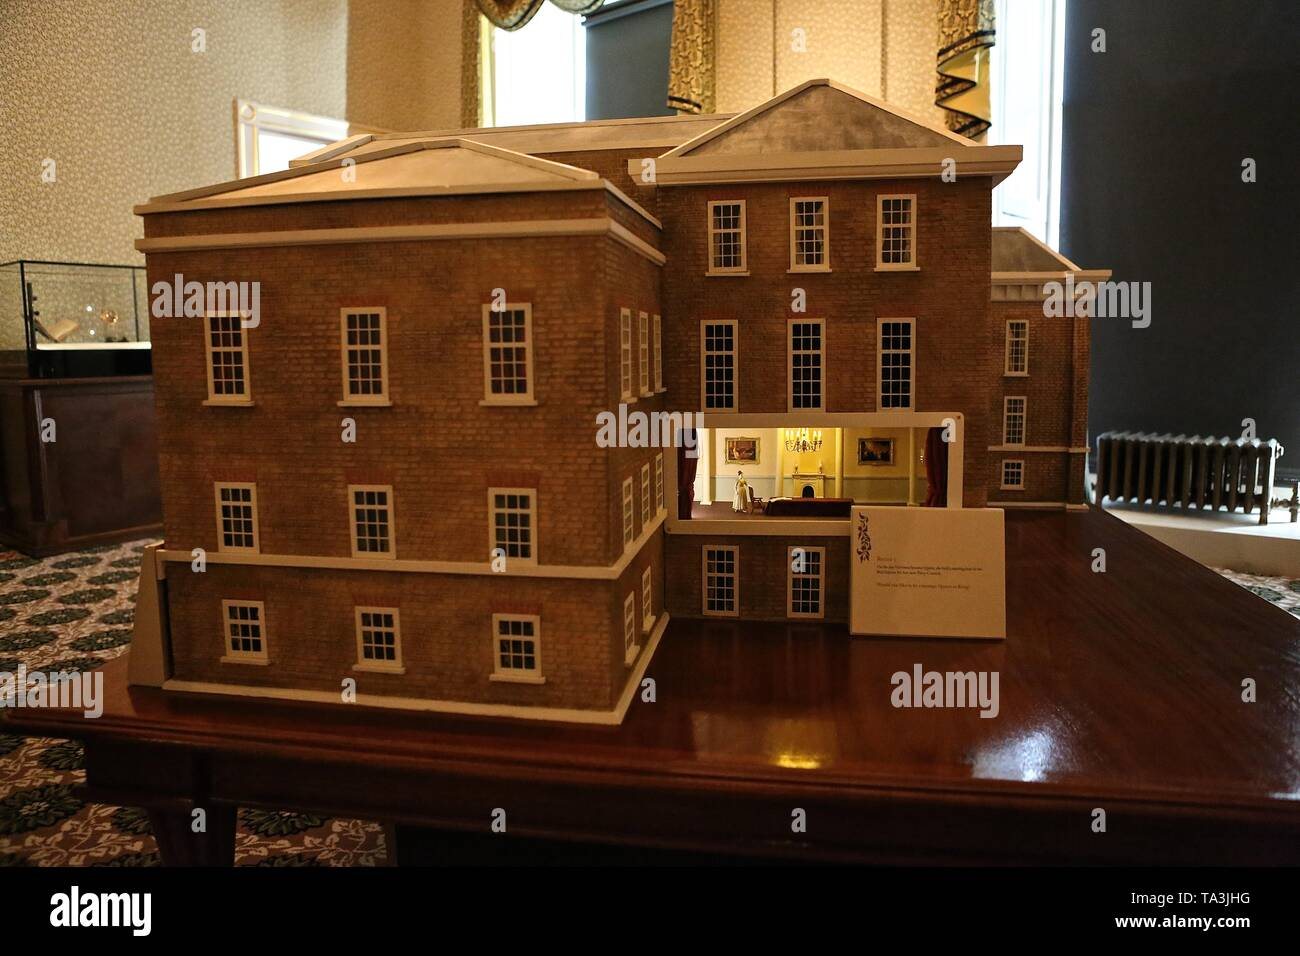 200 th anniversary of Queen Victoria's birth with major exhibition at Kensington Palace 21 May 2019 London , UK - Stock Image